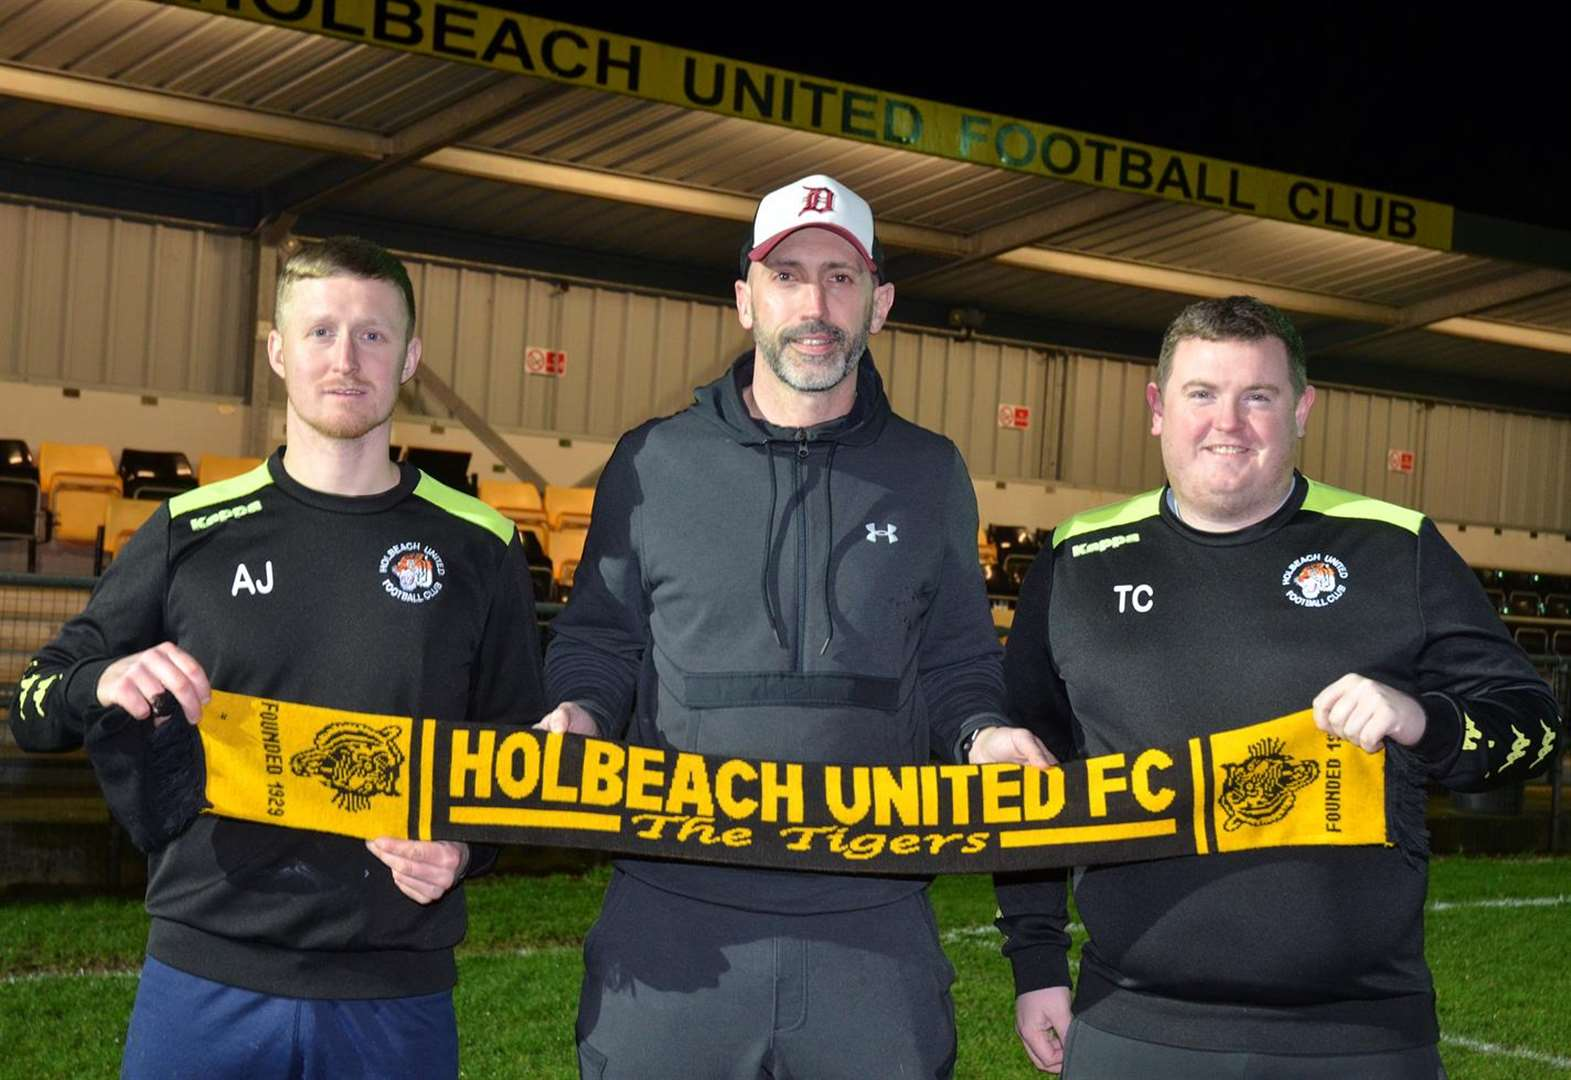 FOOTBALL: Holbeach United 2018-19 results & fixtures